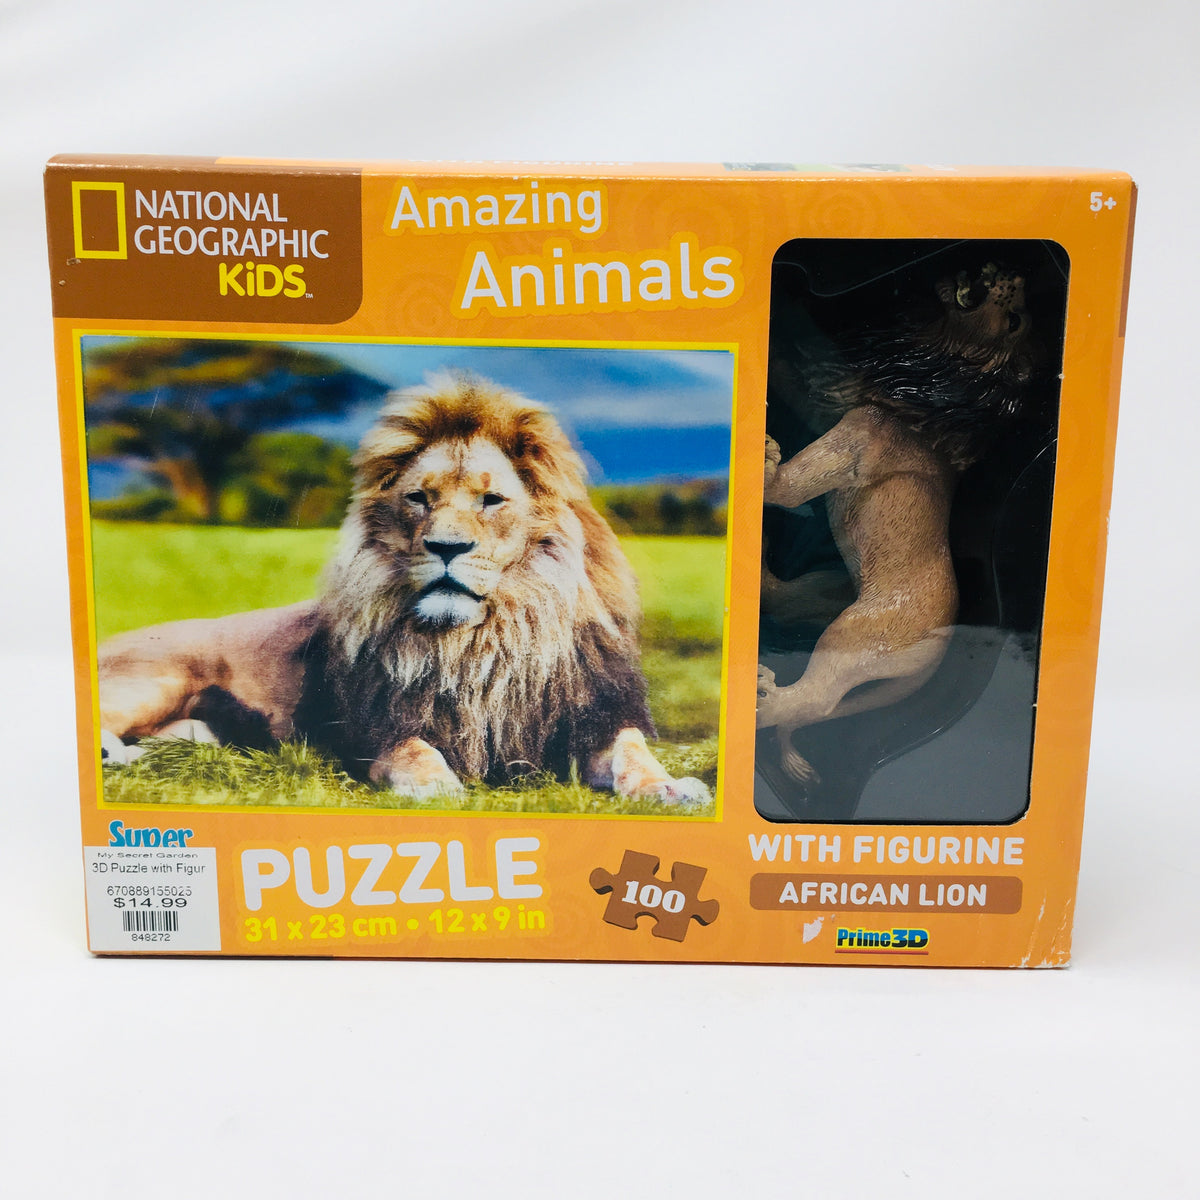 3D Puzzle w/ toy figurine